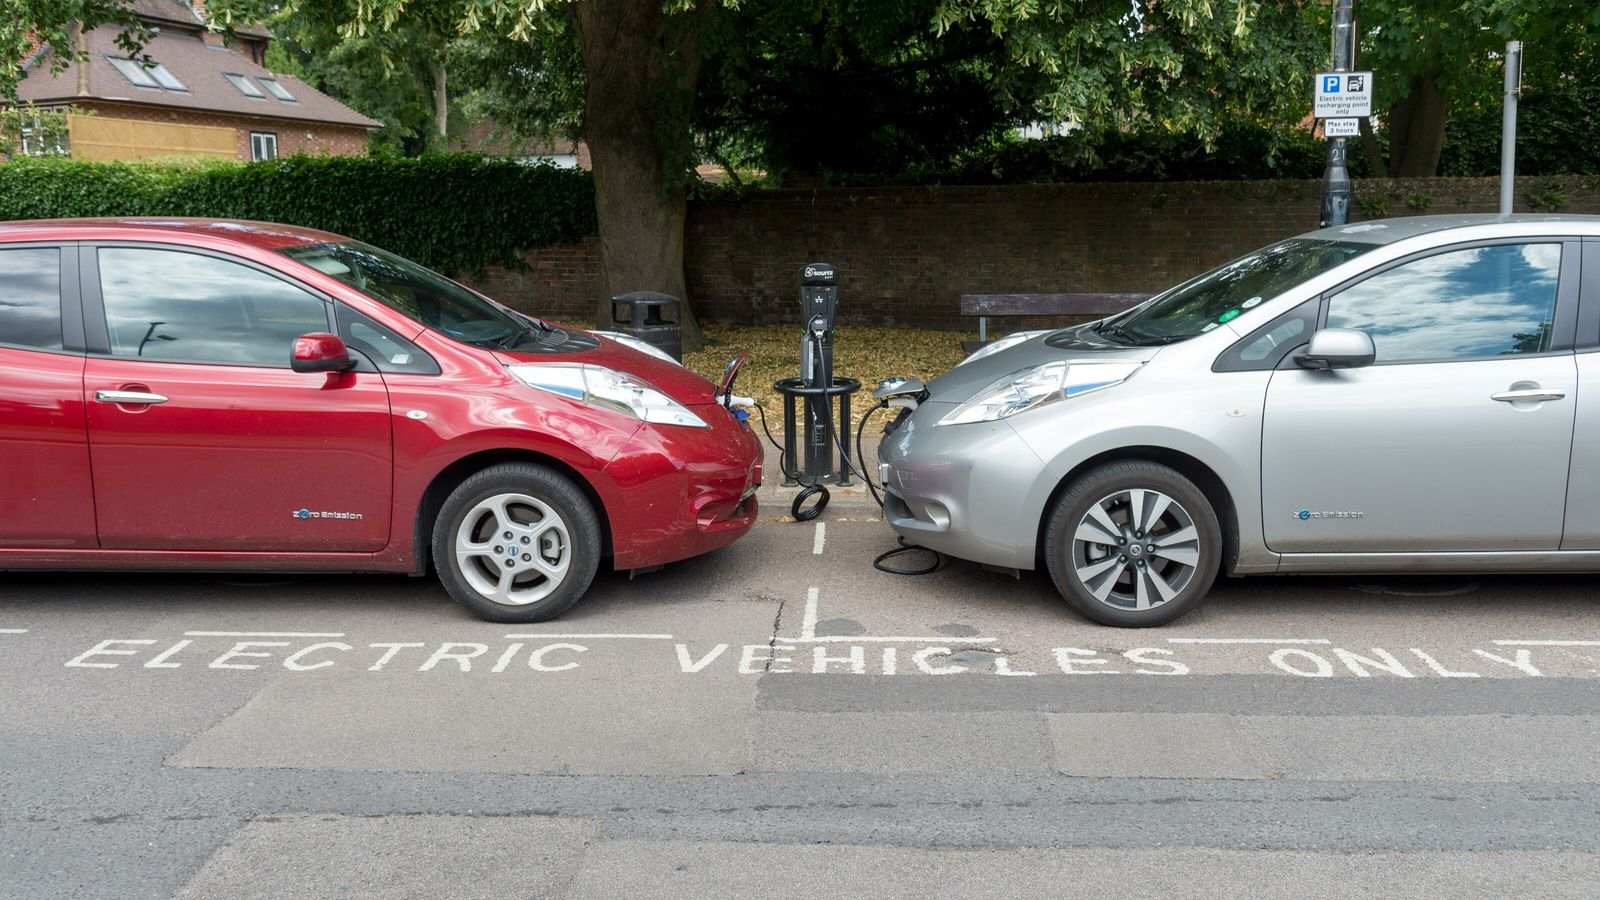 Electric vehicles (EVs) on a kerbside charging point in St Albans, UK. While the cars are ...